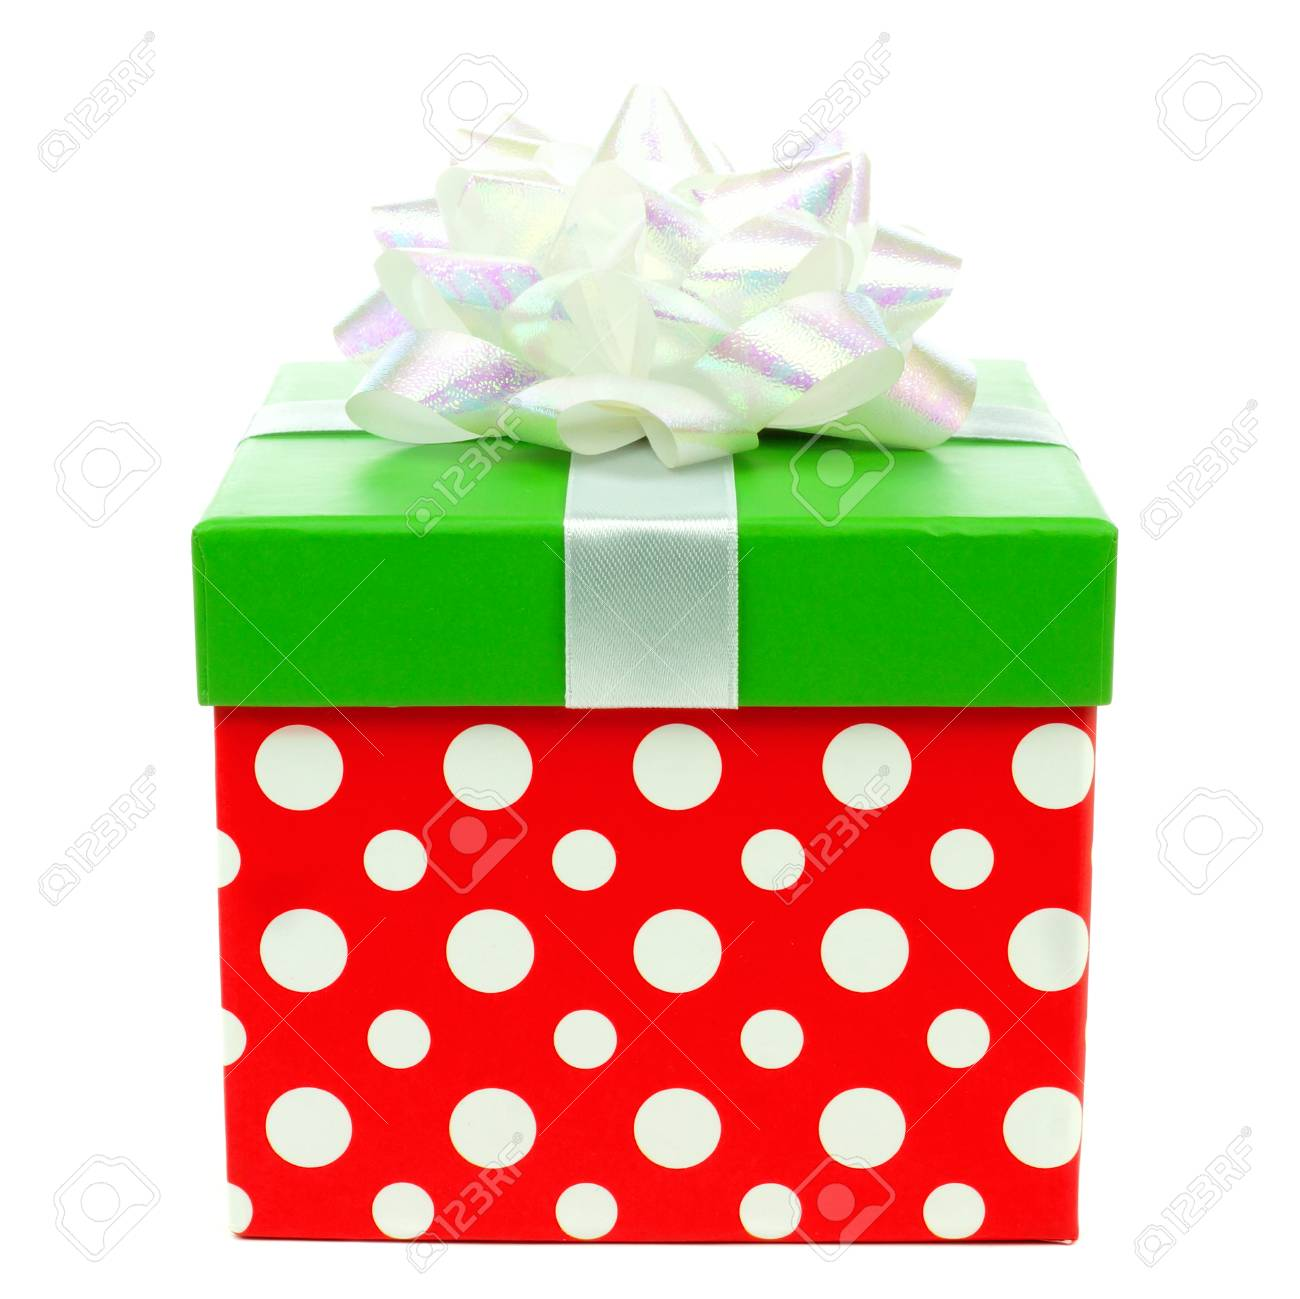 Christmas Green And Red.Red Green And White Polka Dot Christmas Gift Box With Shiny